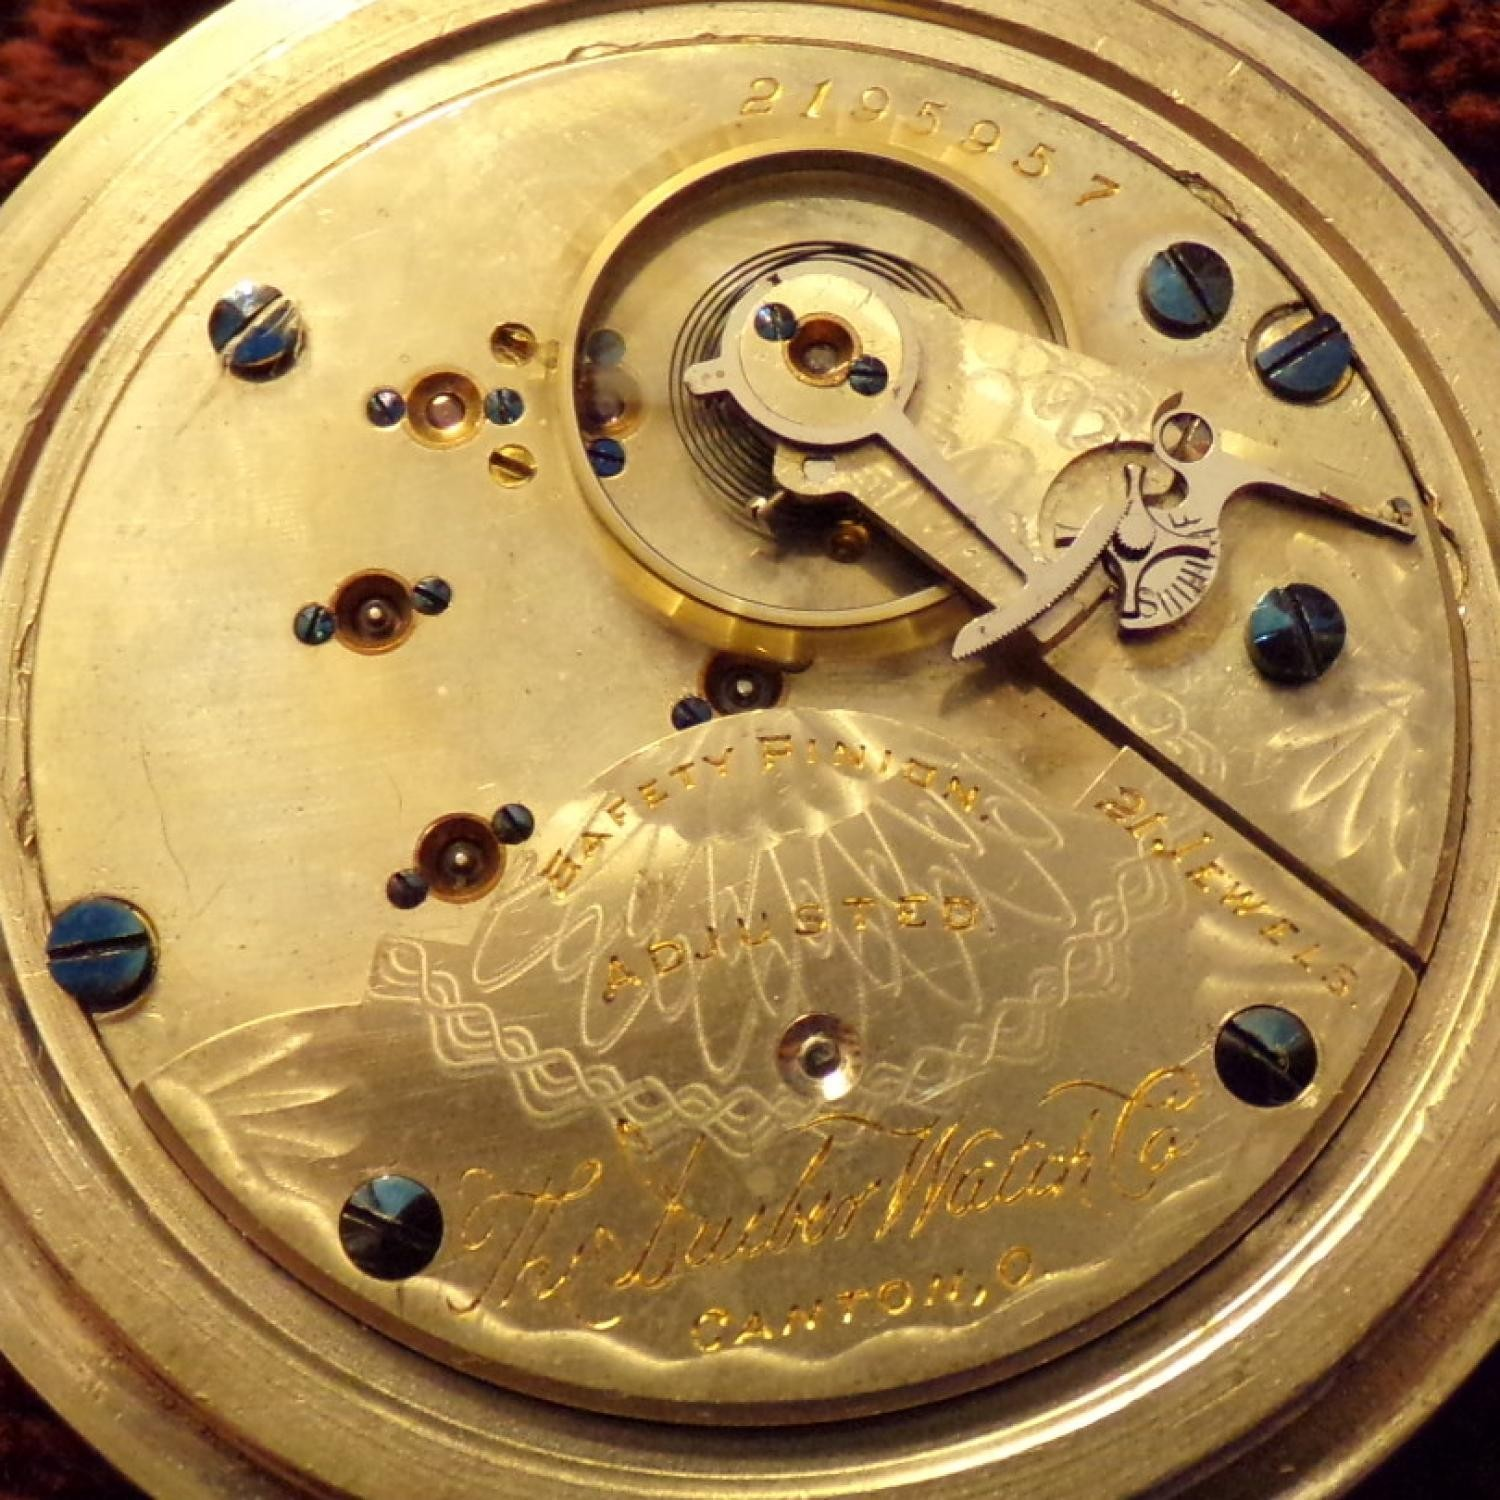 Image of Hampden The Dueber Watch Co. #2195957 Movement